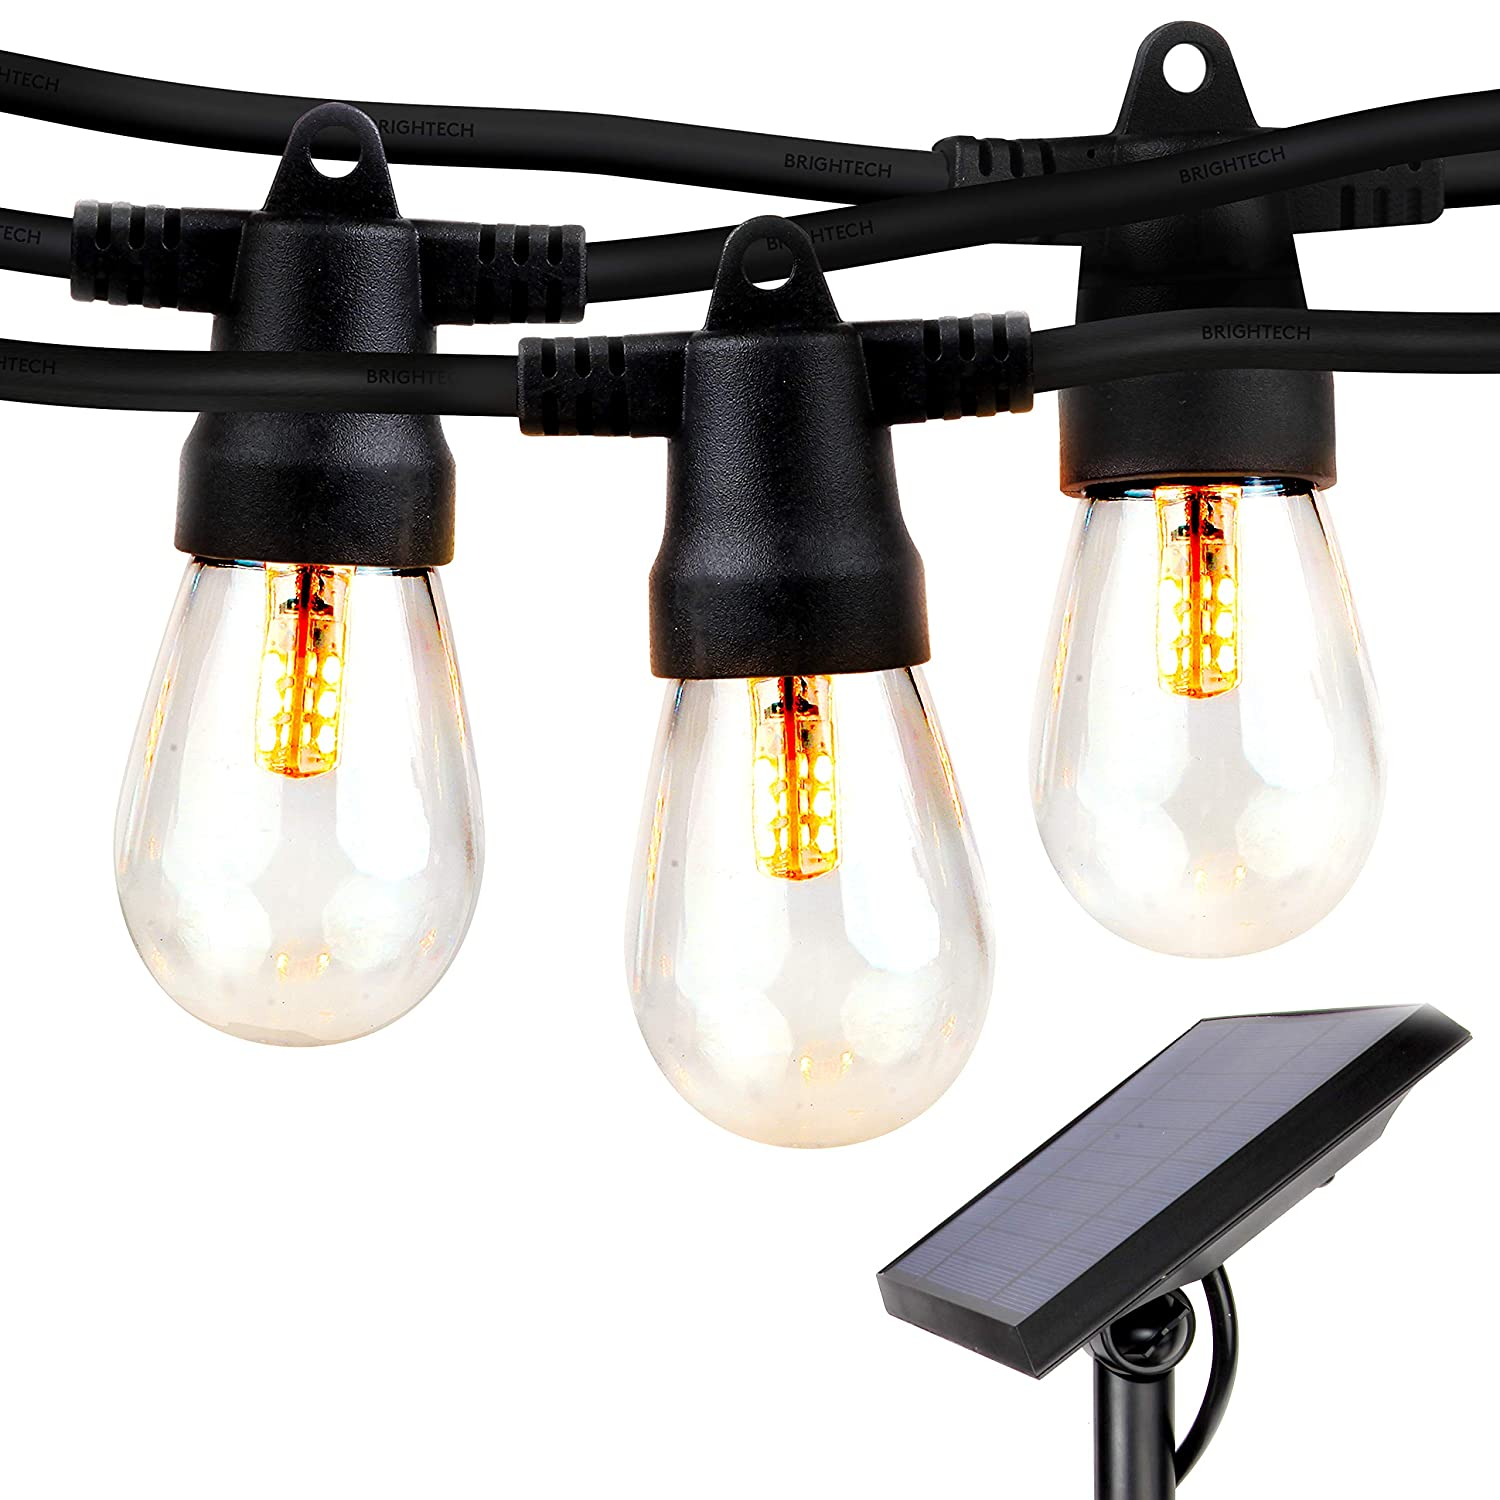 Brightech Ambience Pro Waterproof Solar LED Outdoor String Lights Hanging 2W Vintage Edison Bulbs 27 Ft Commercial Grade Market Lights Create Bistro Ambience On Your Deck Pergola